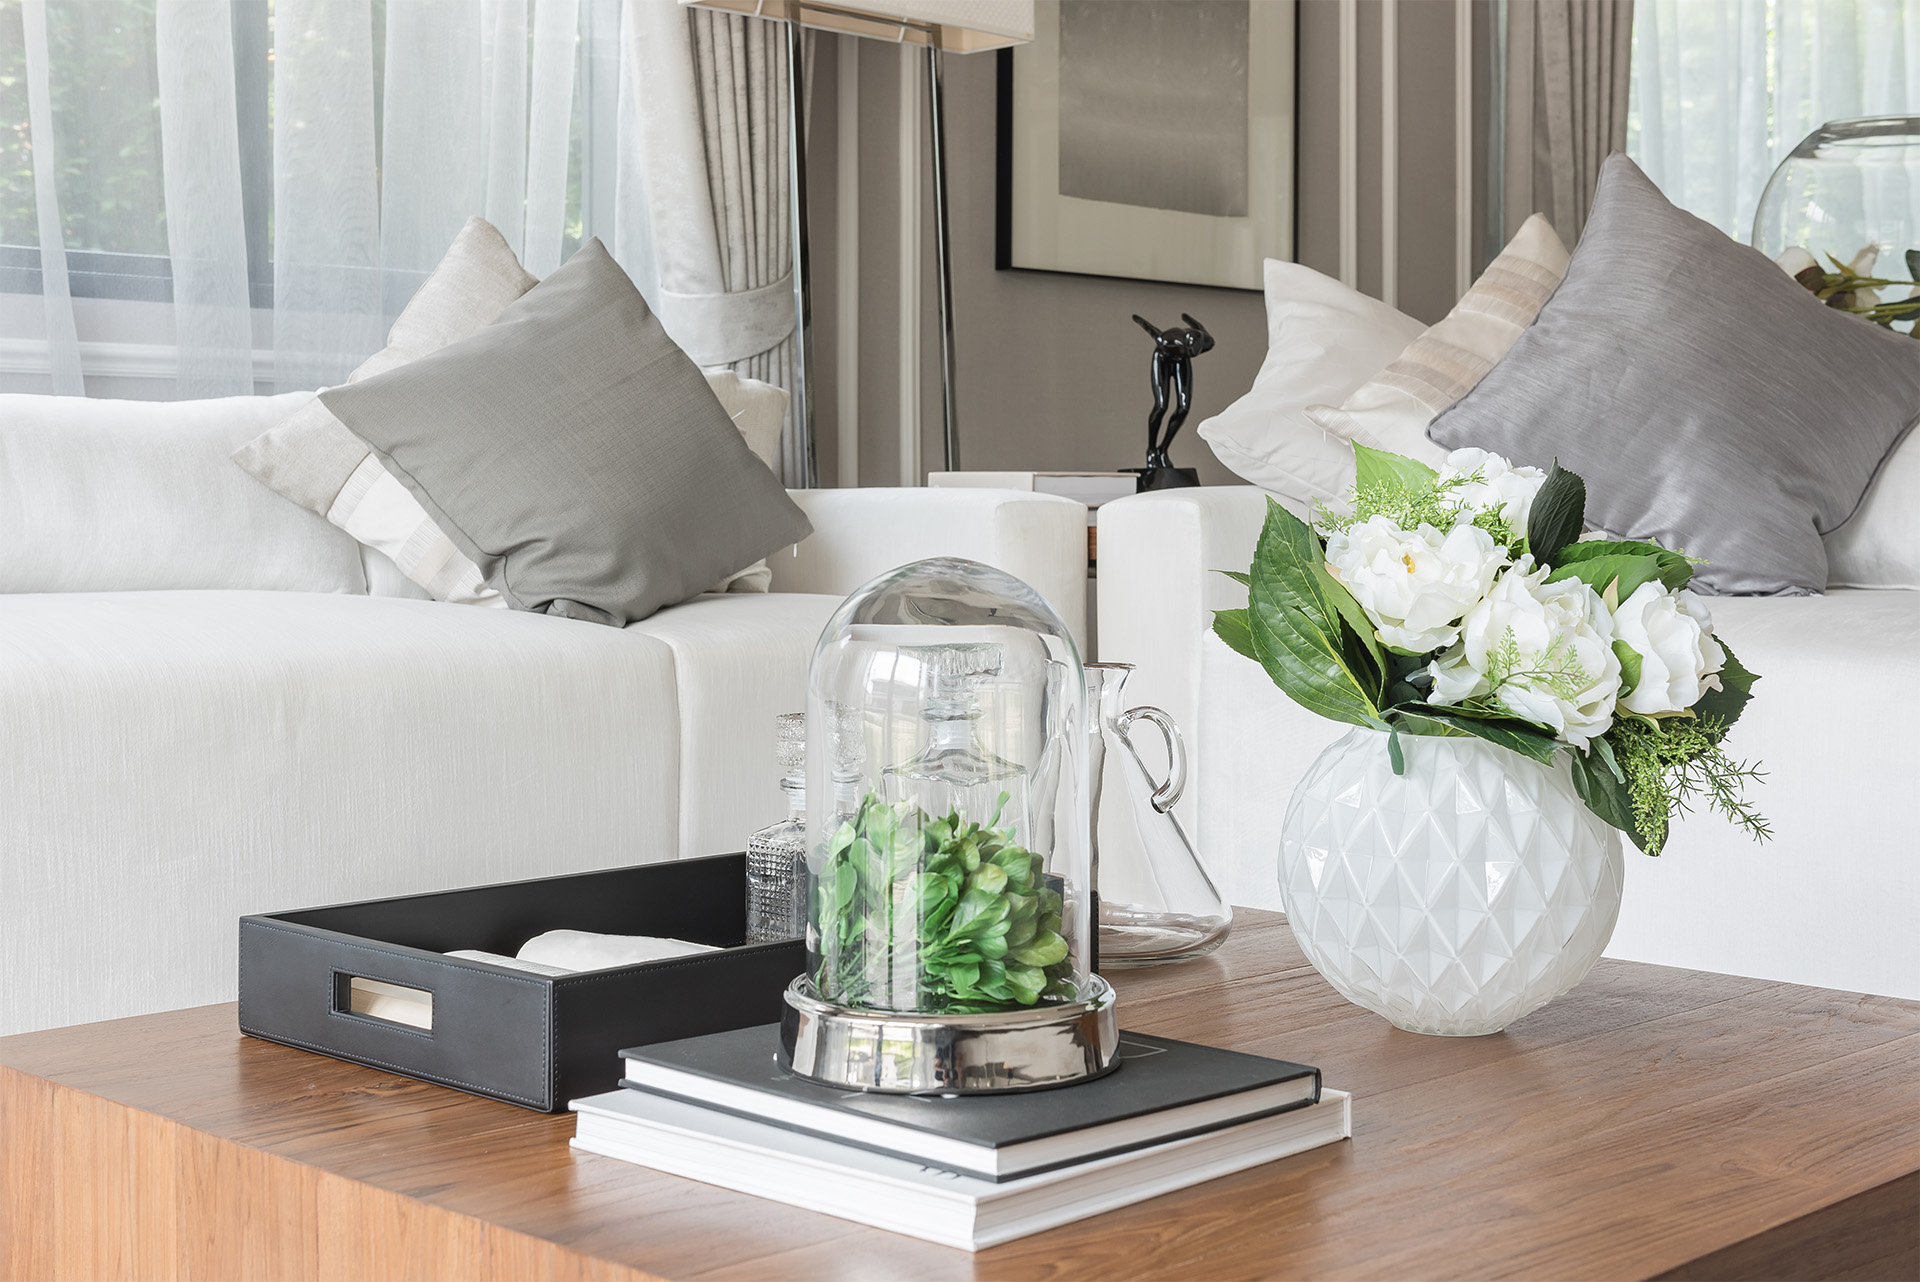 10 Easy Coffee Table Decoration Ideas to plete Your Room